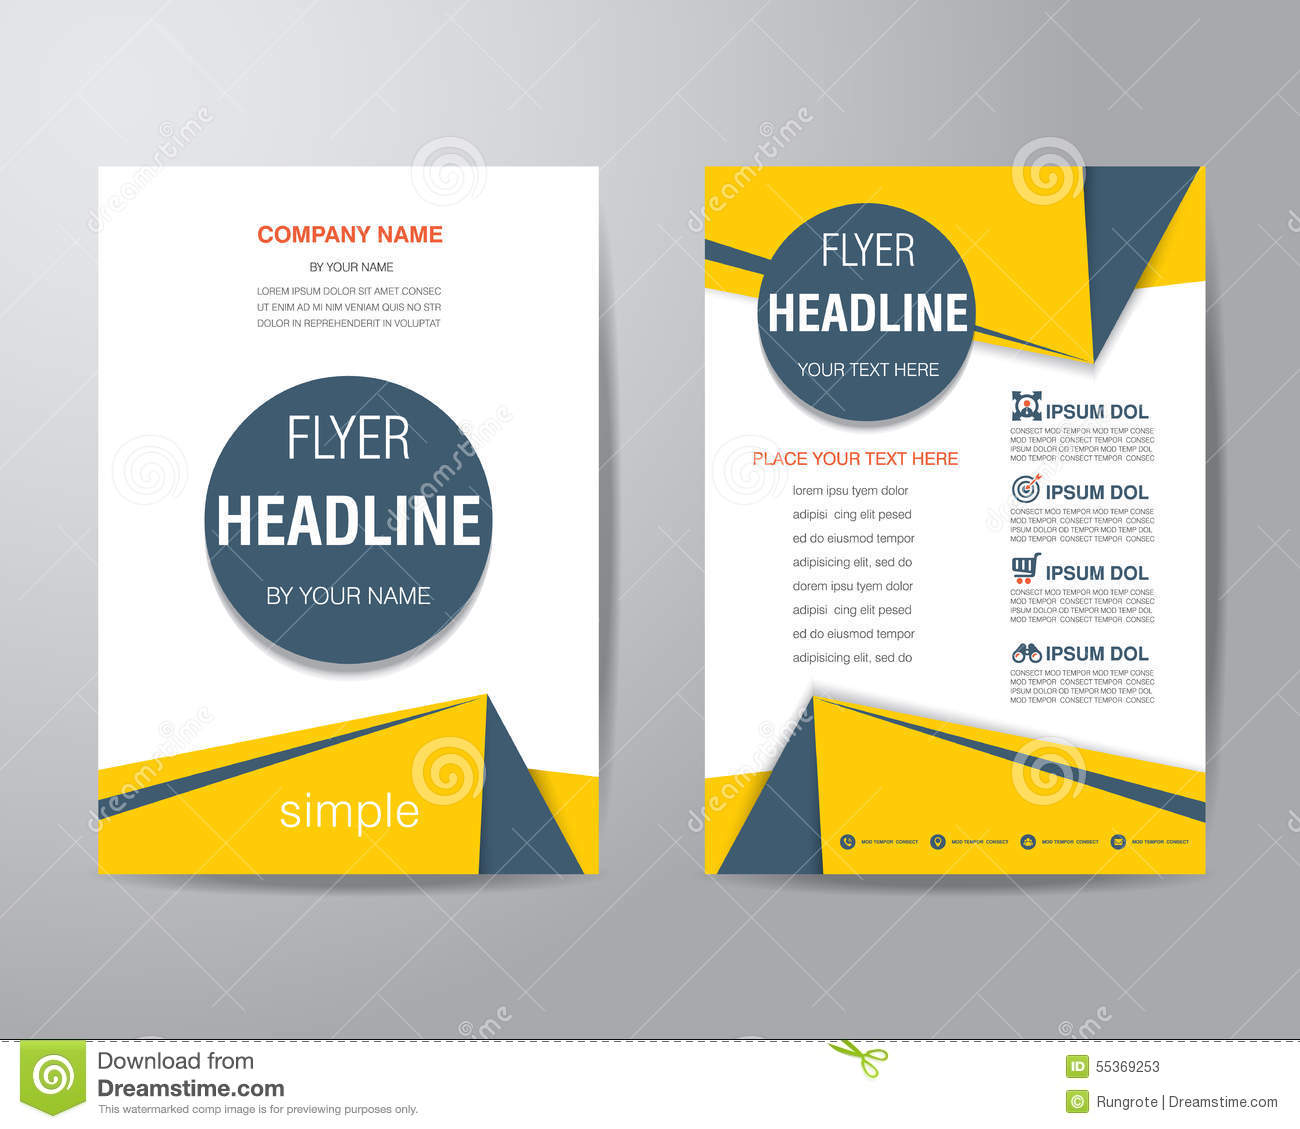 templates brochure design - simple triangle and circle brochure flyer design layout